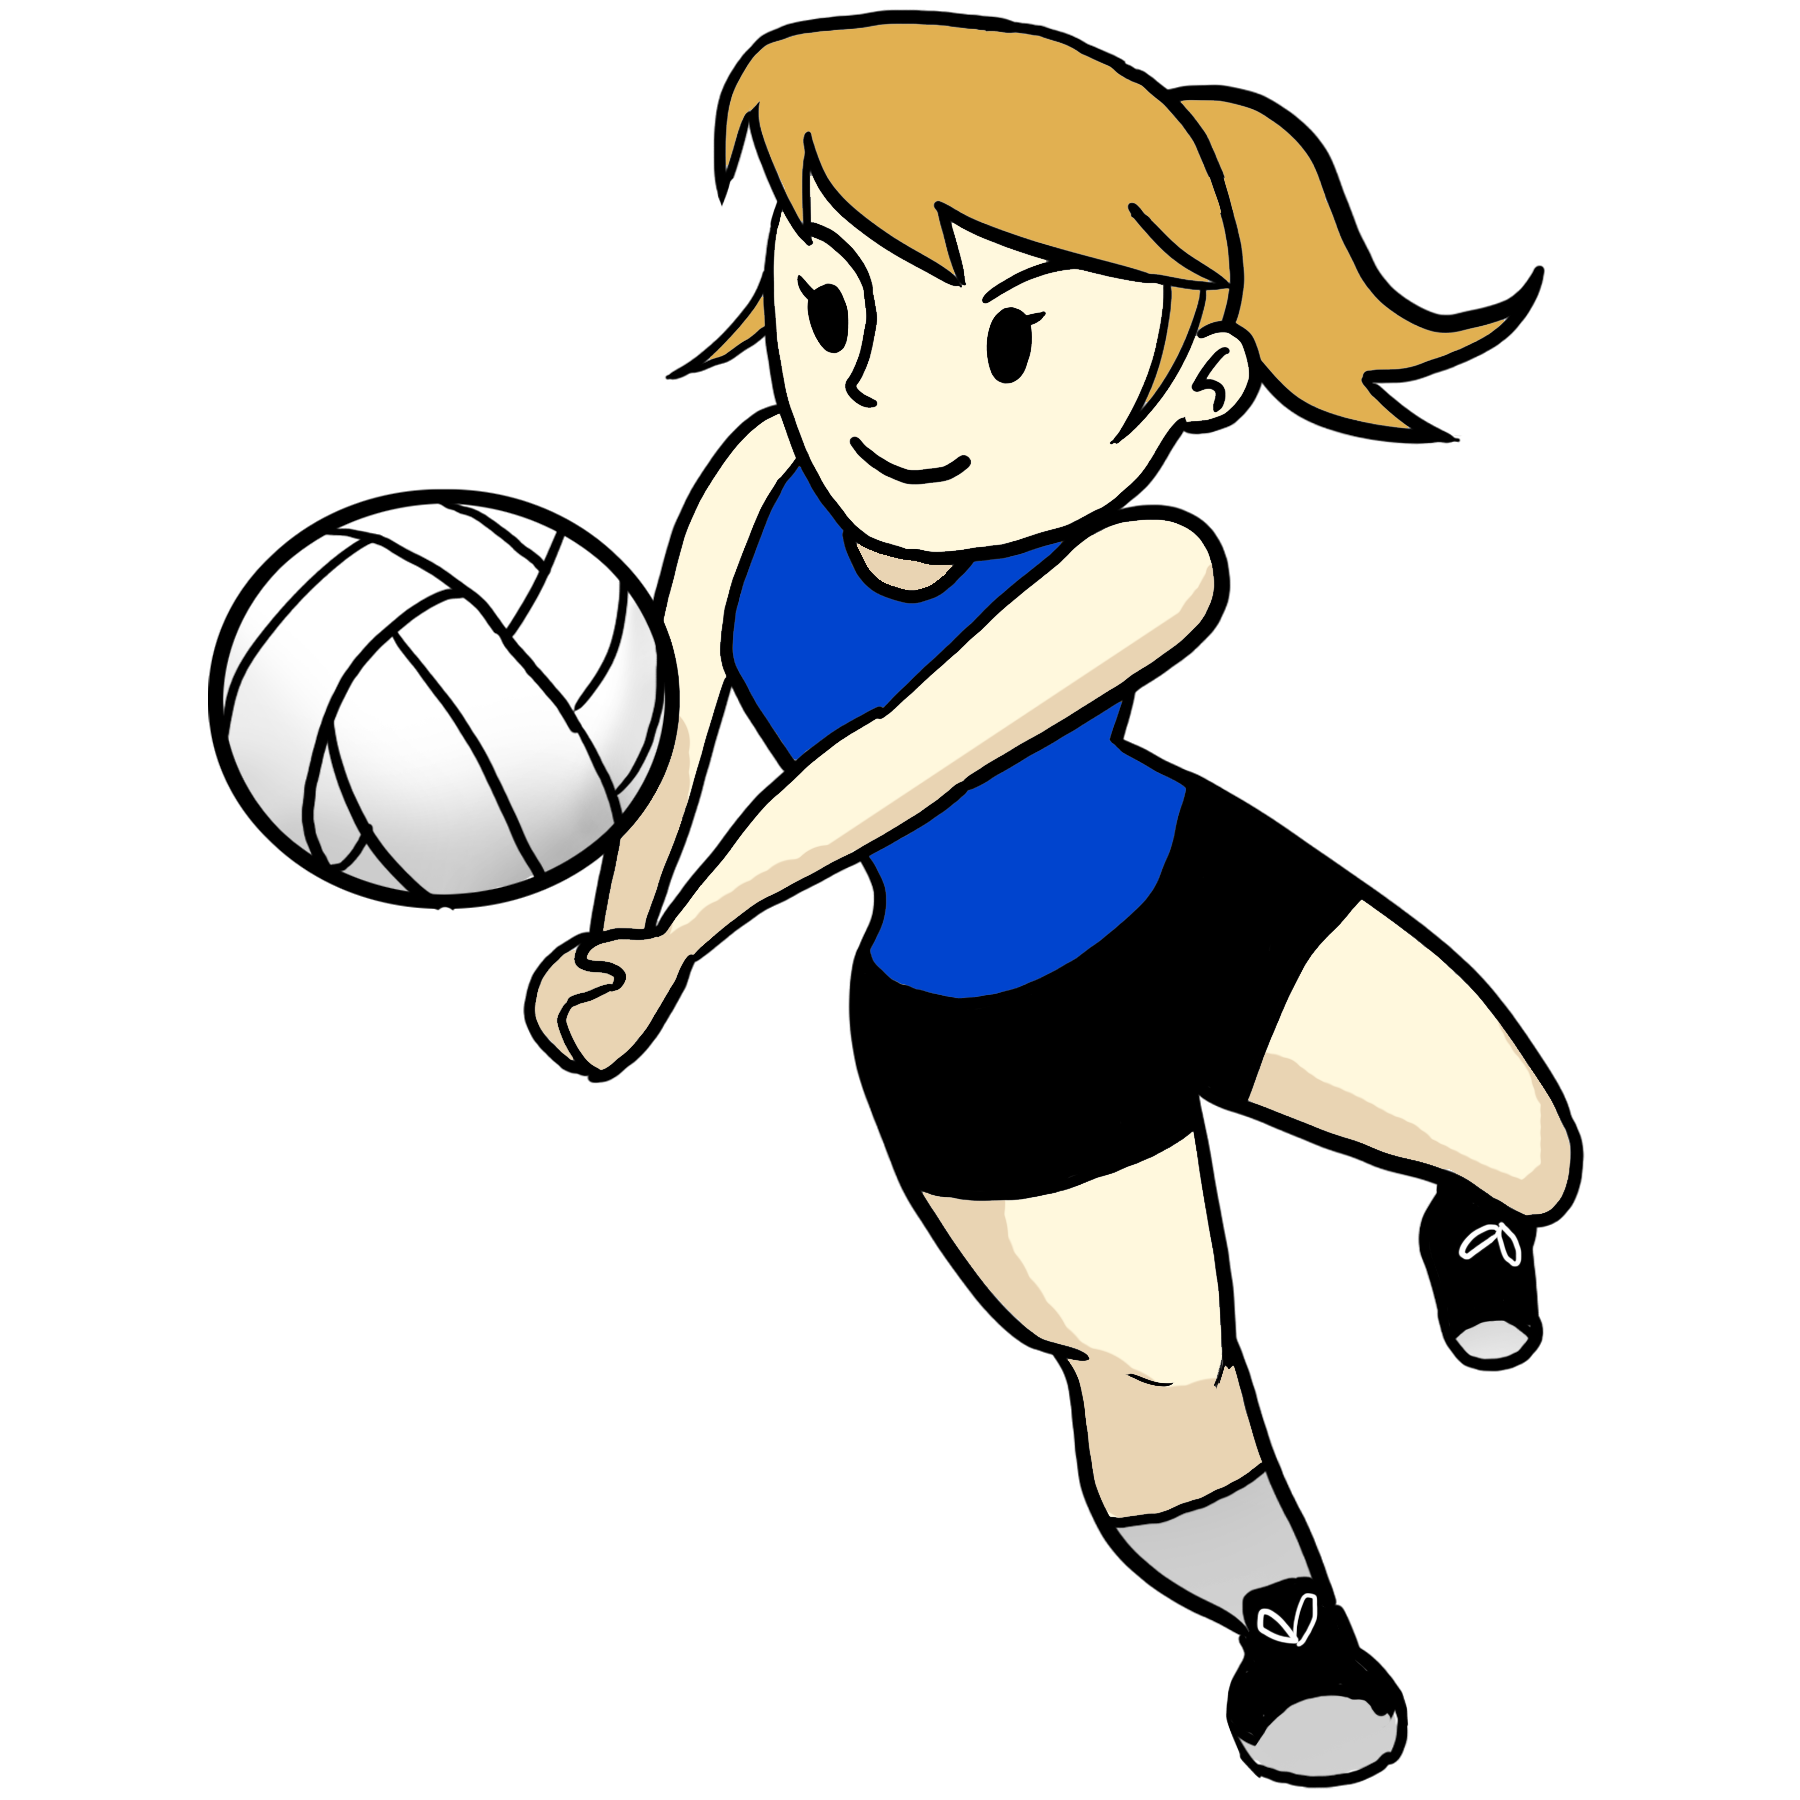 free sports clipart images - HD840×1125